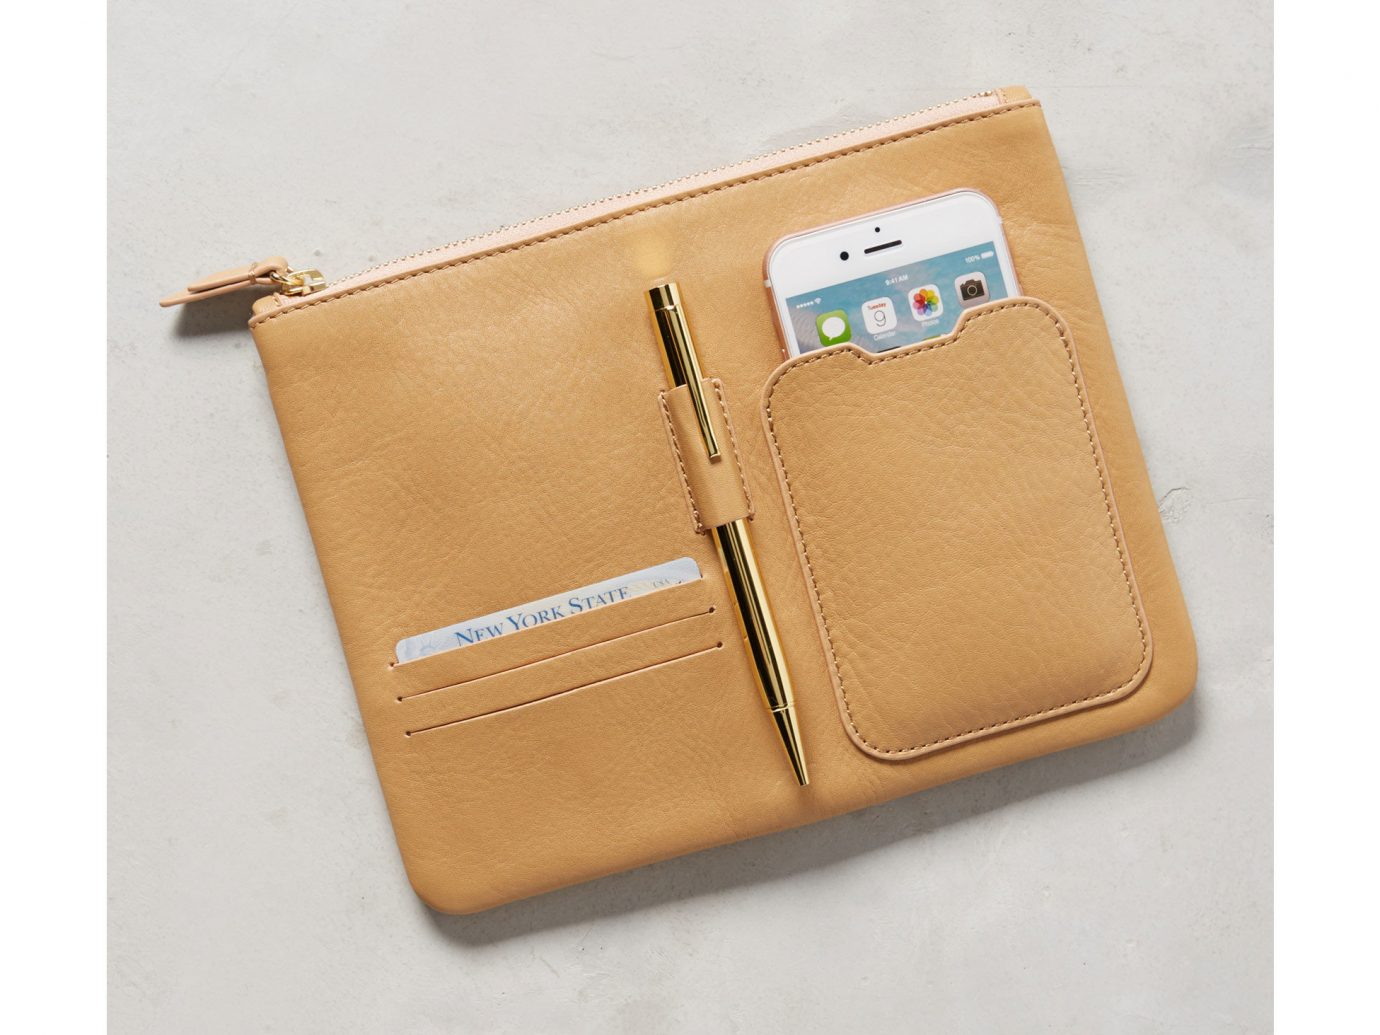 Style + Design case accessory brown wallet bag fashion accessory leather brand coin purse beige handbag